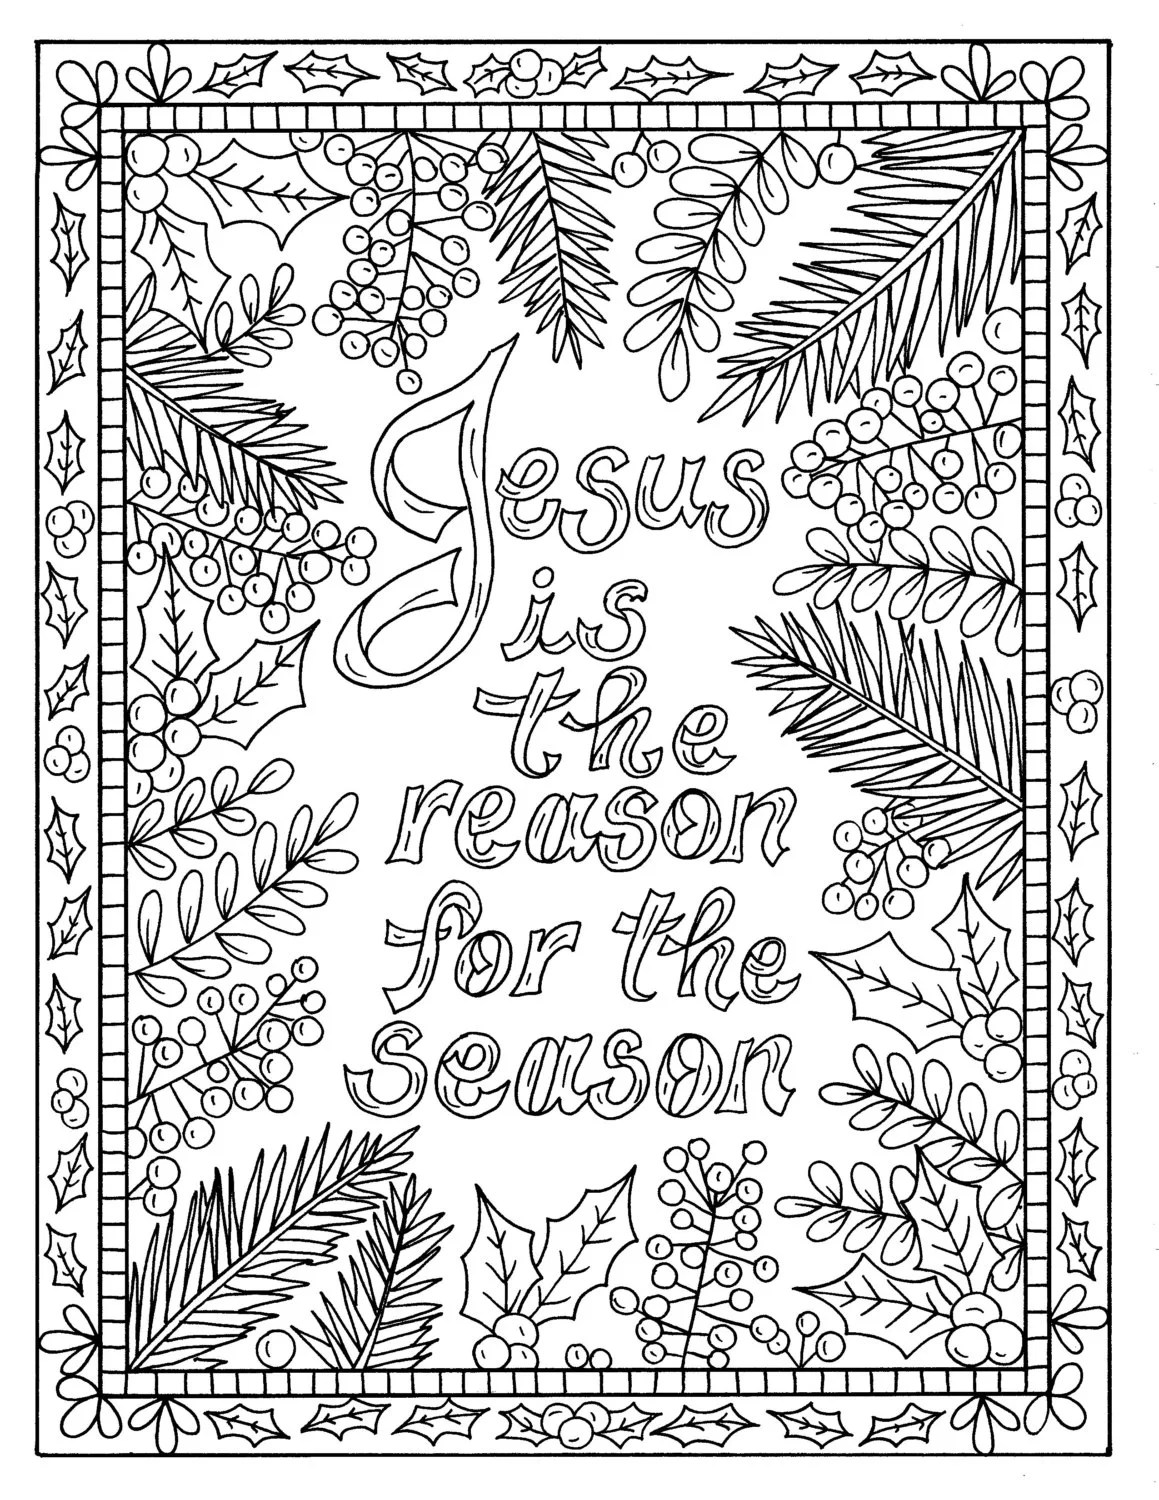 5 Christian Coloring Pages For Christmas Color Book Digital